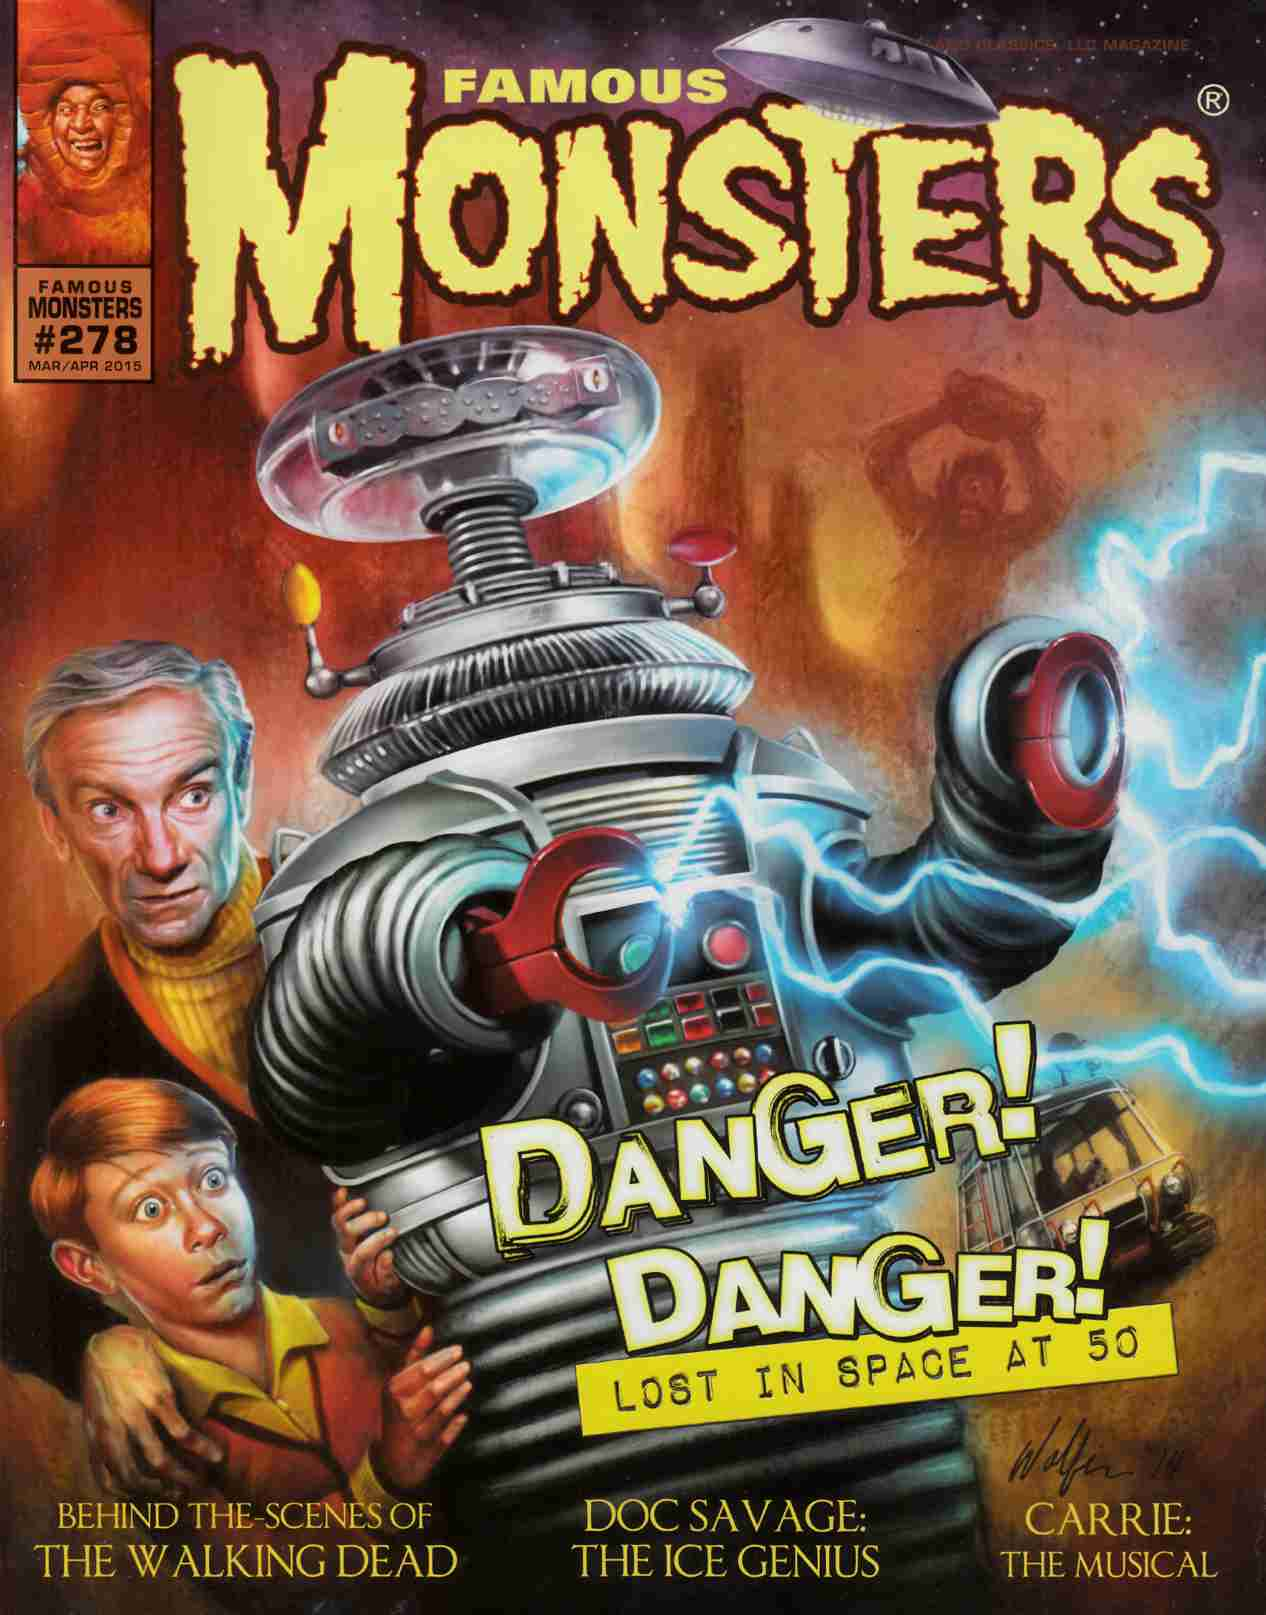 Famous Monsters of Filmland #278 [Magazine]